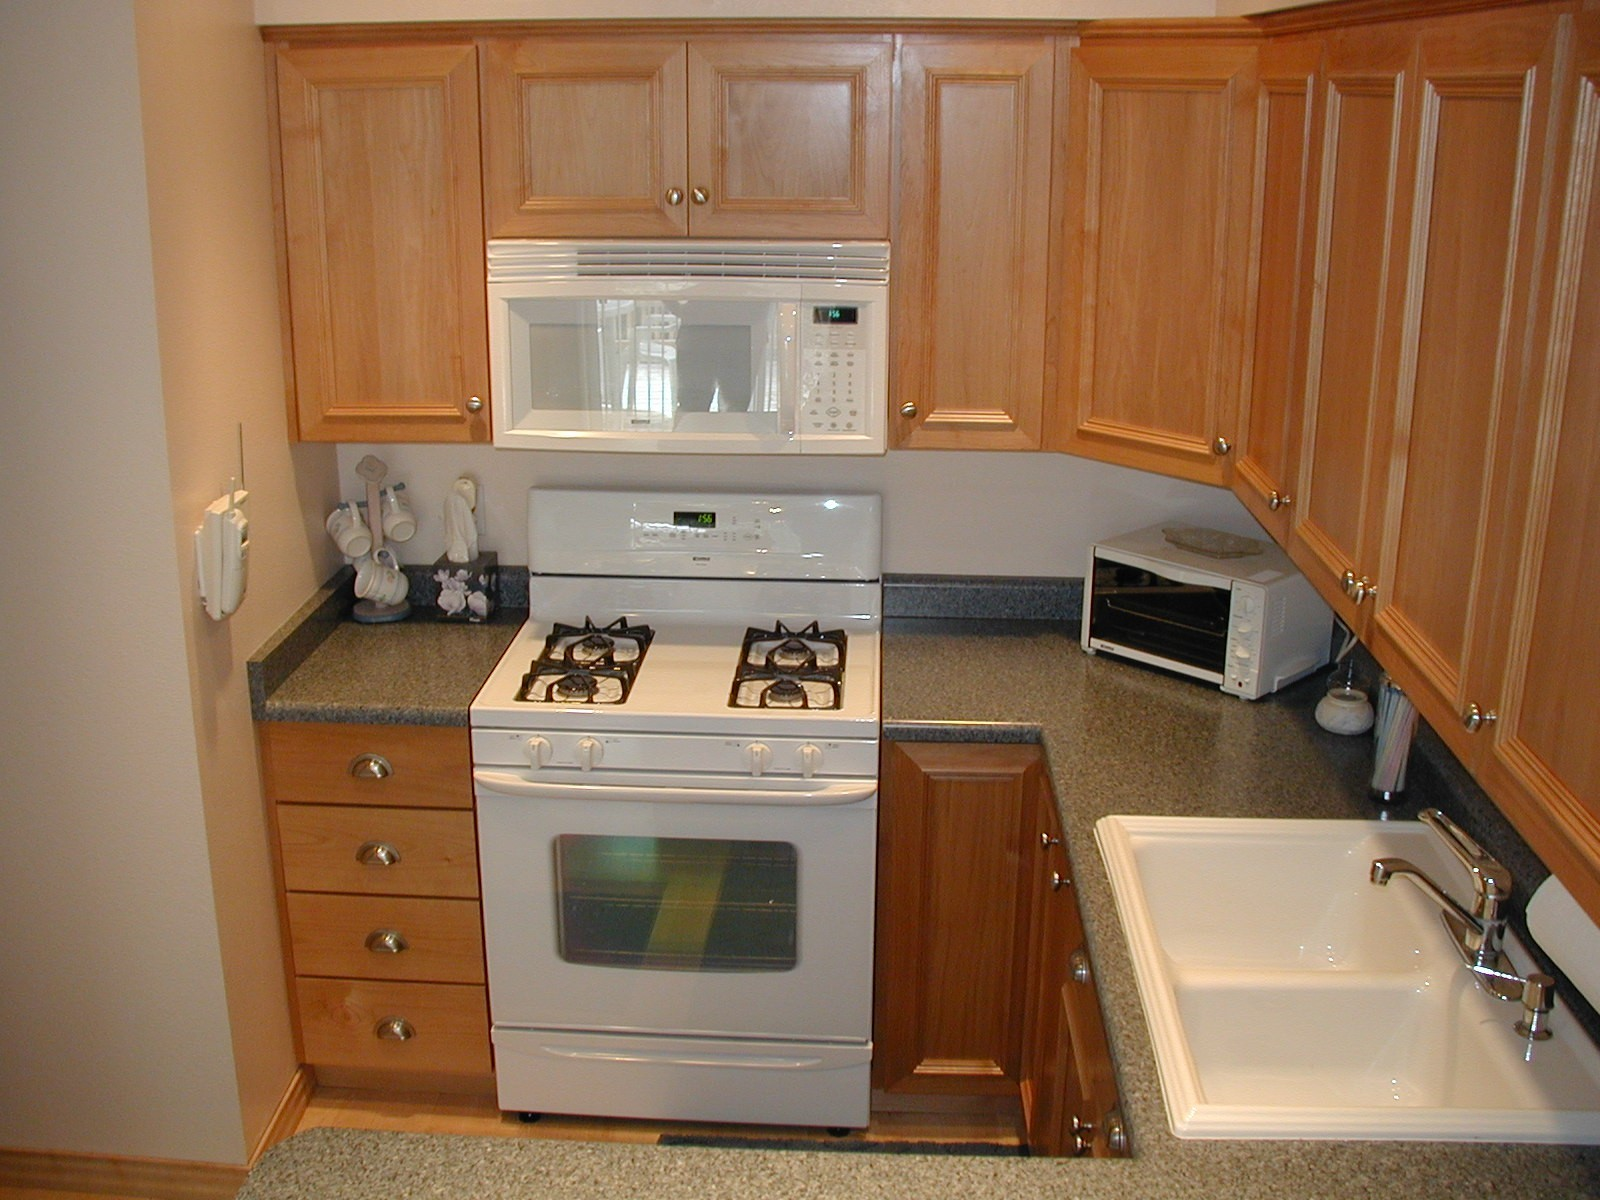 Kitchen Cabinet Pictures With Hardware